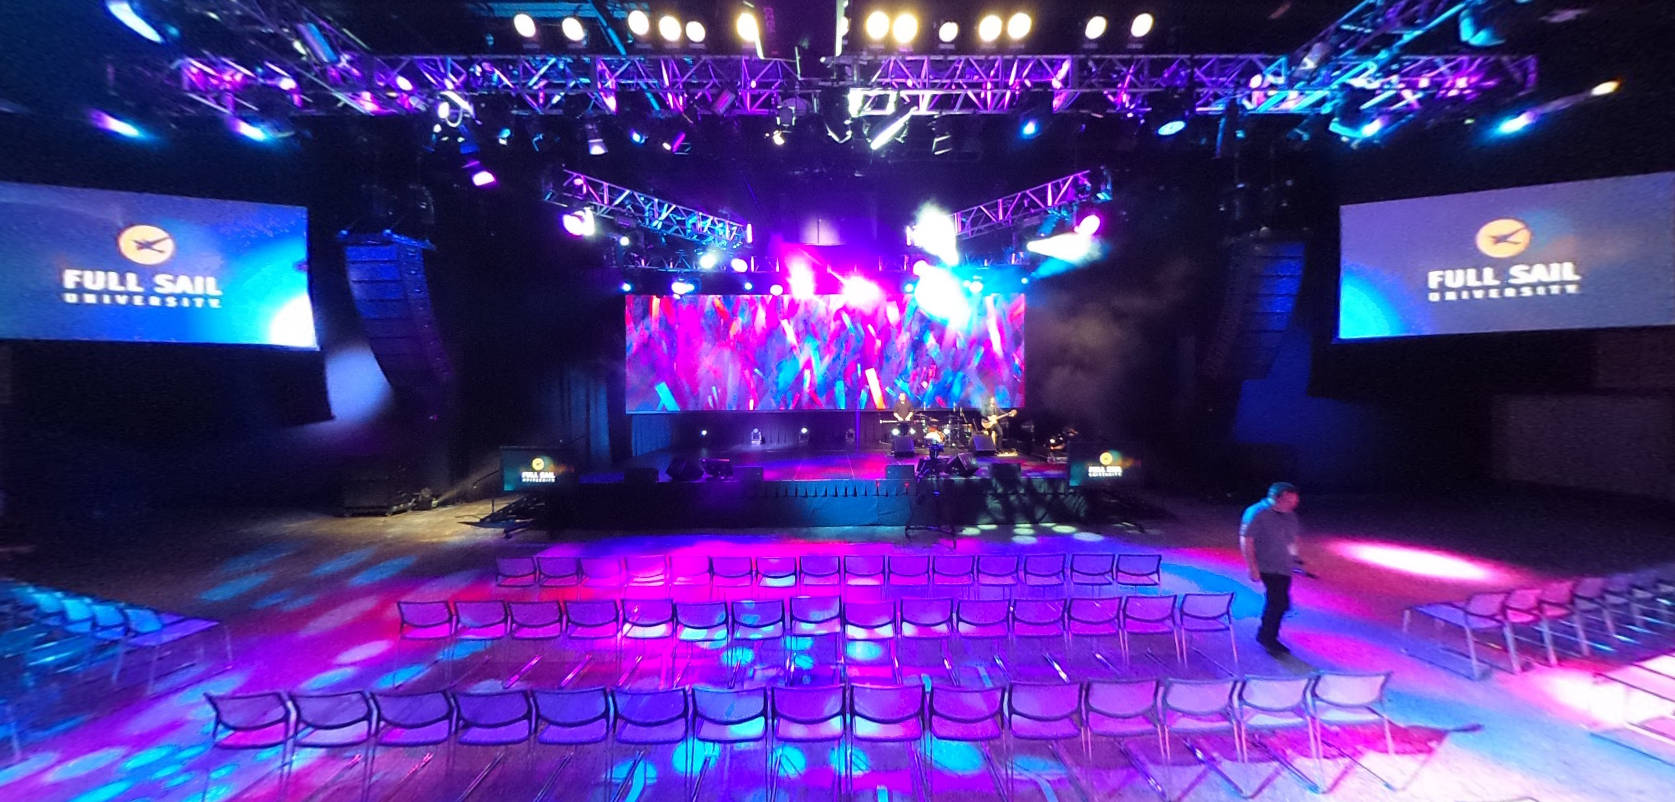 Full Sail Live Venue